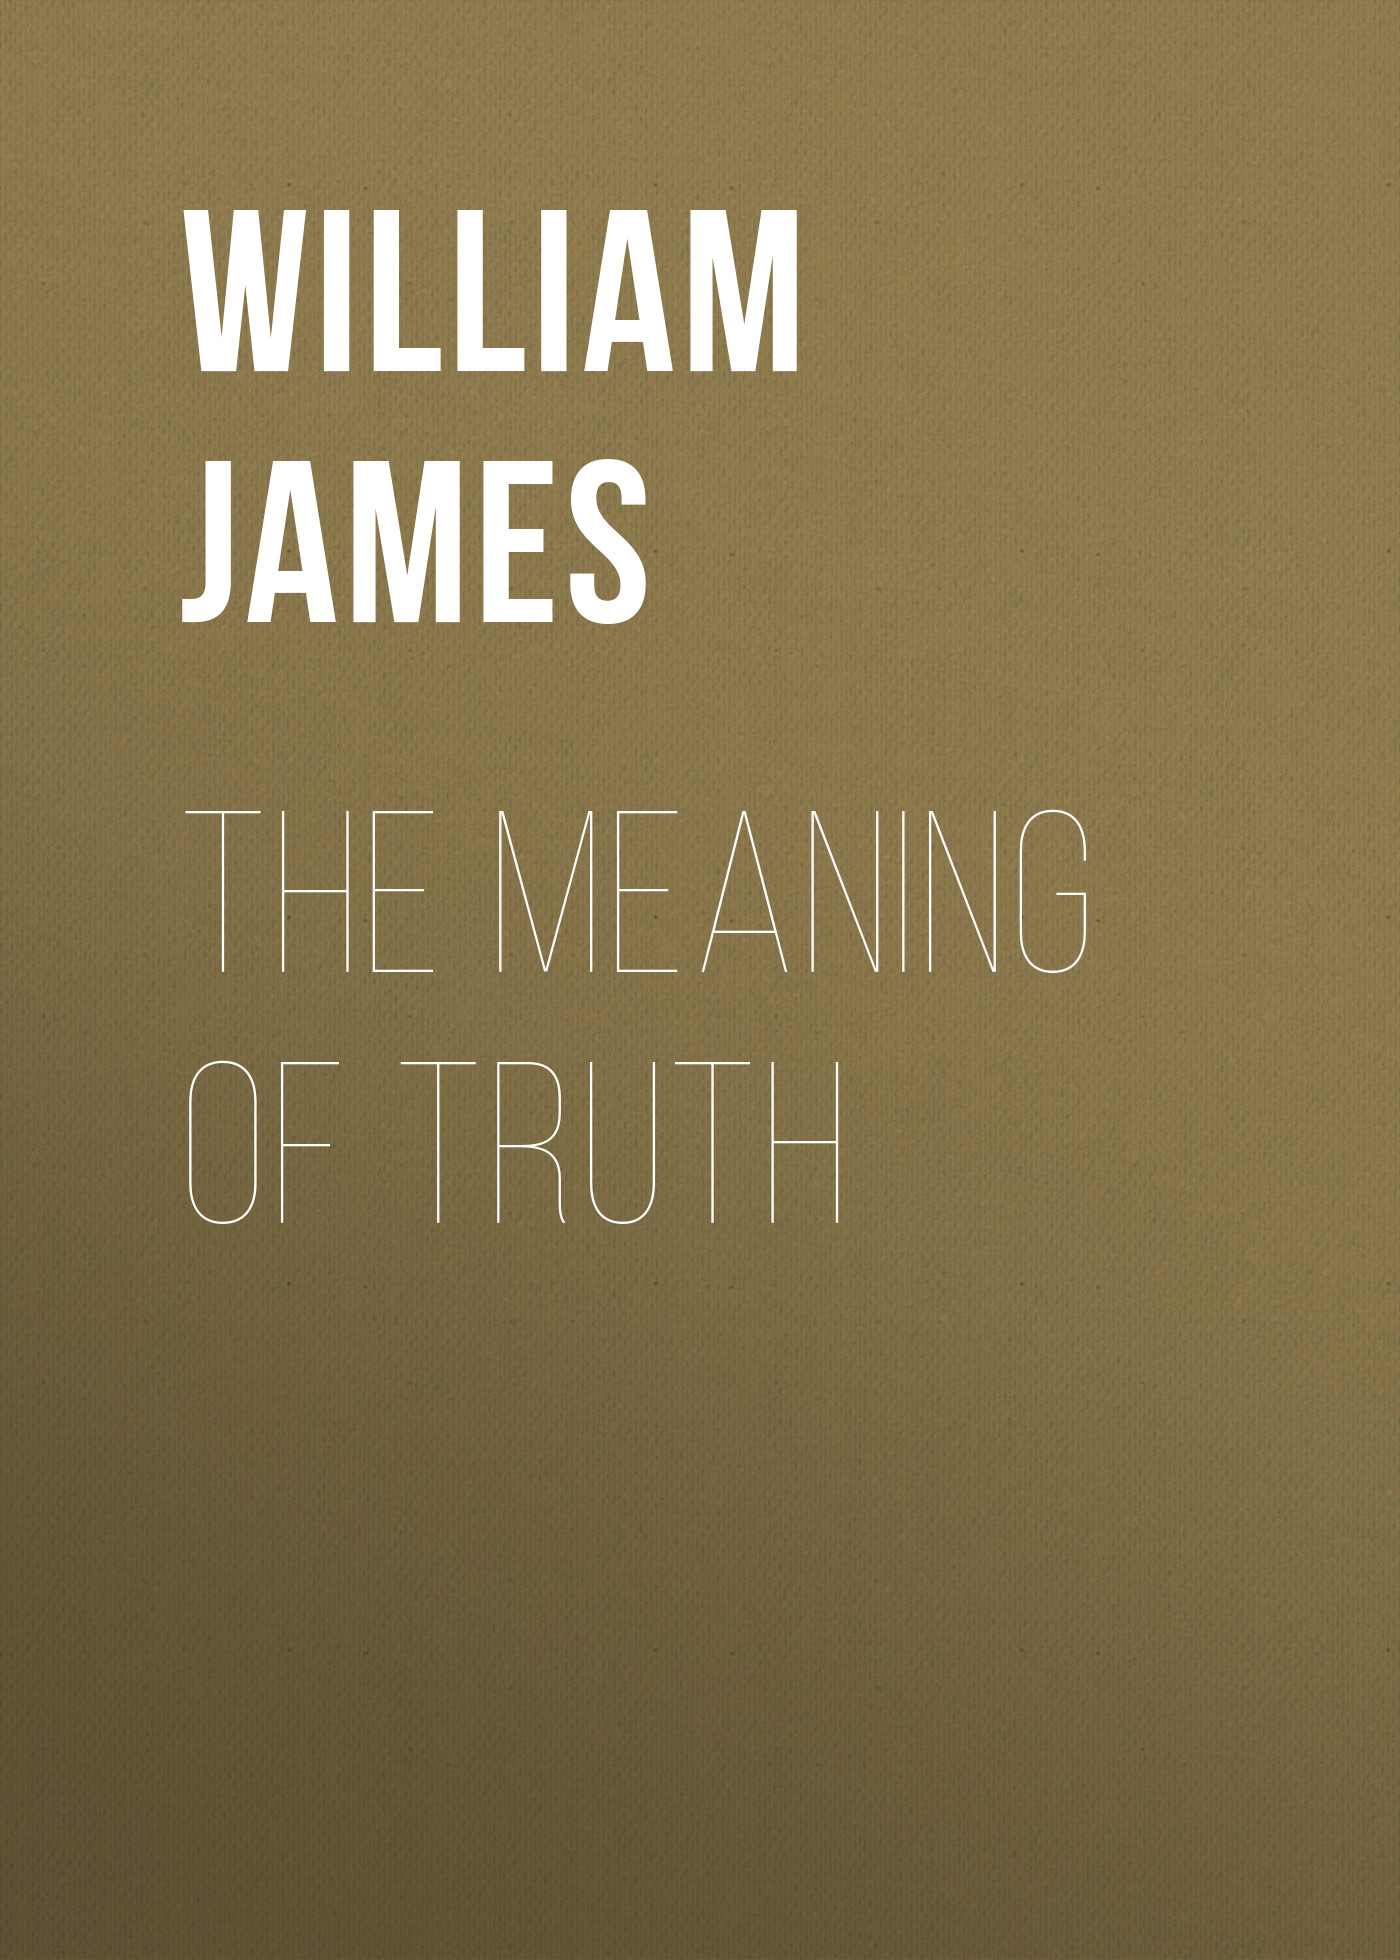 William James The Meaning of Truth the meaning of rice